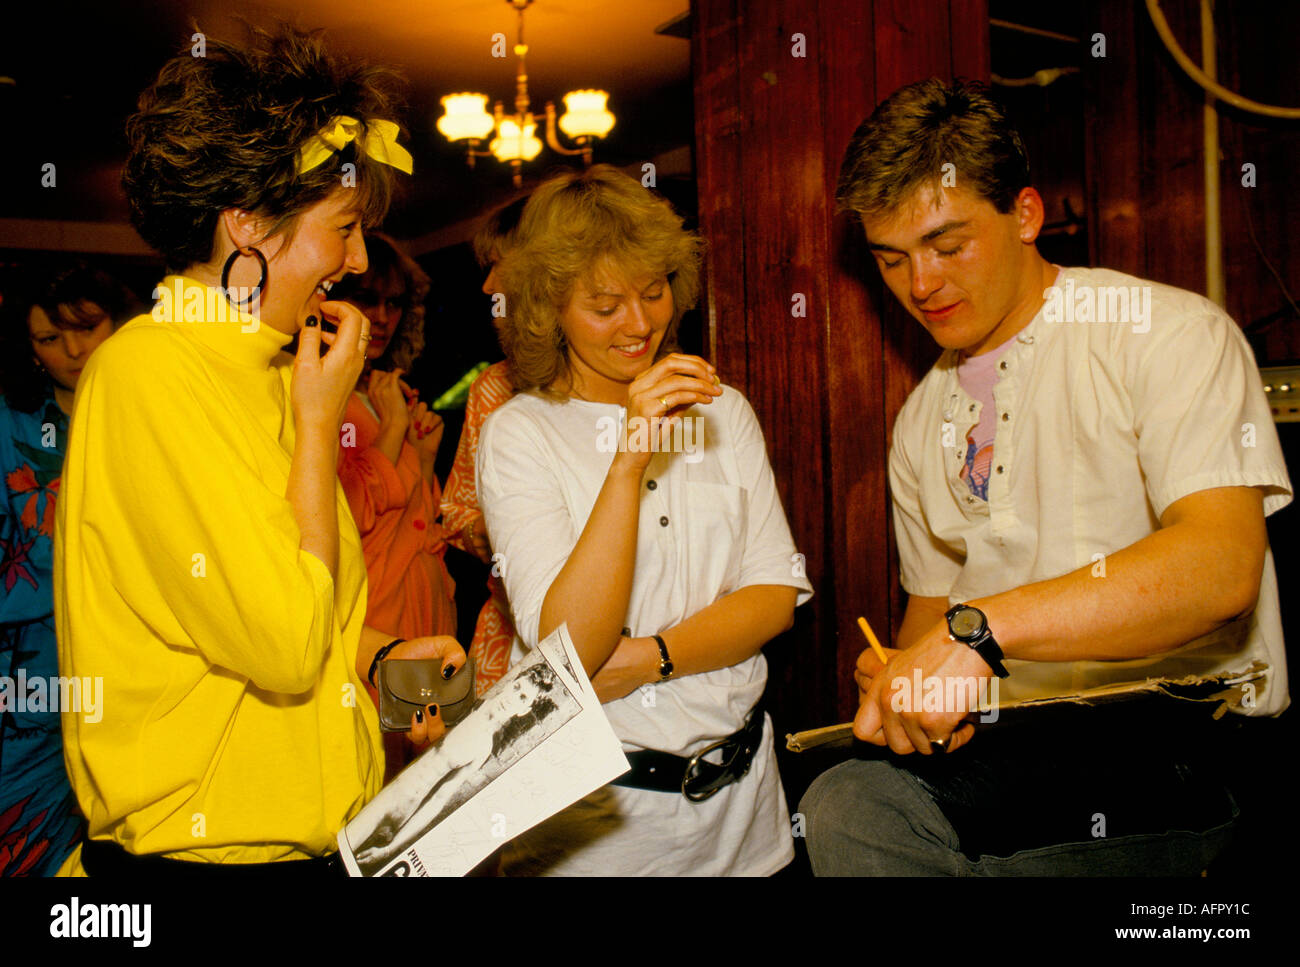 Man signing his autograph for girls after their performance at a hen party London PHOTO HOMER SYKES - Stock Image